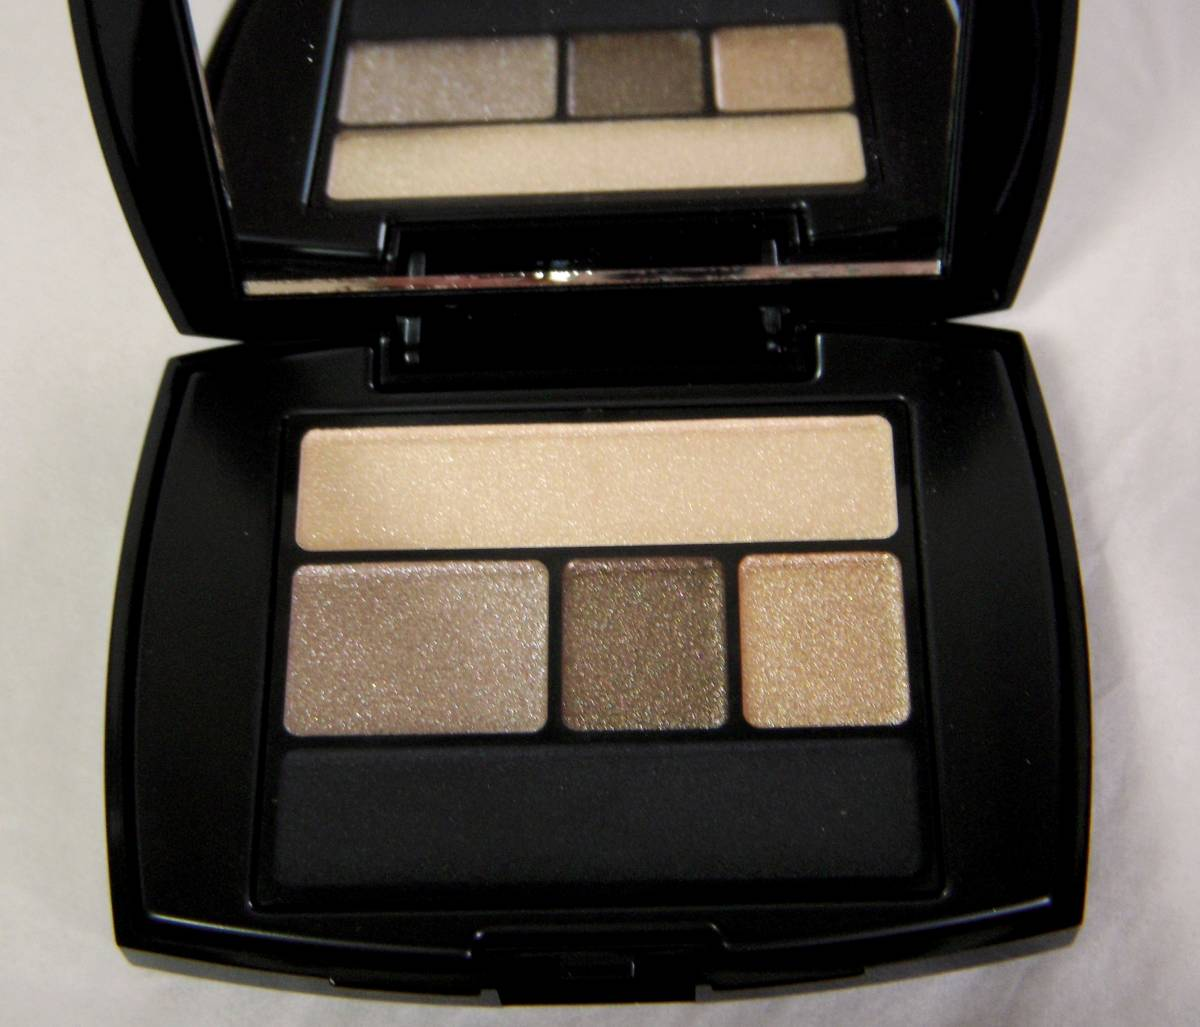 Lancome Color Design Eyeshadow Palette 110 Chocolat Amande 5 Color Mini Size Real Yahoo Auction Salling,Space Saving Small Space Small Bedroom Design Ideas